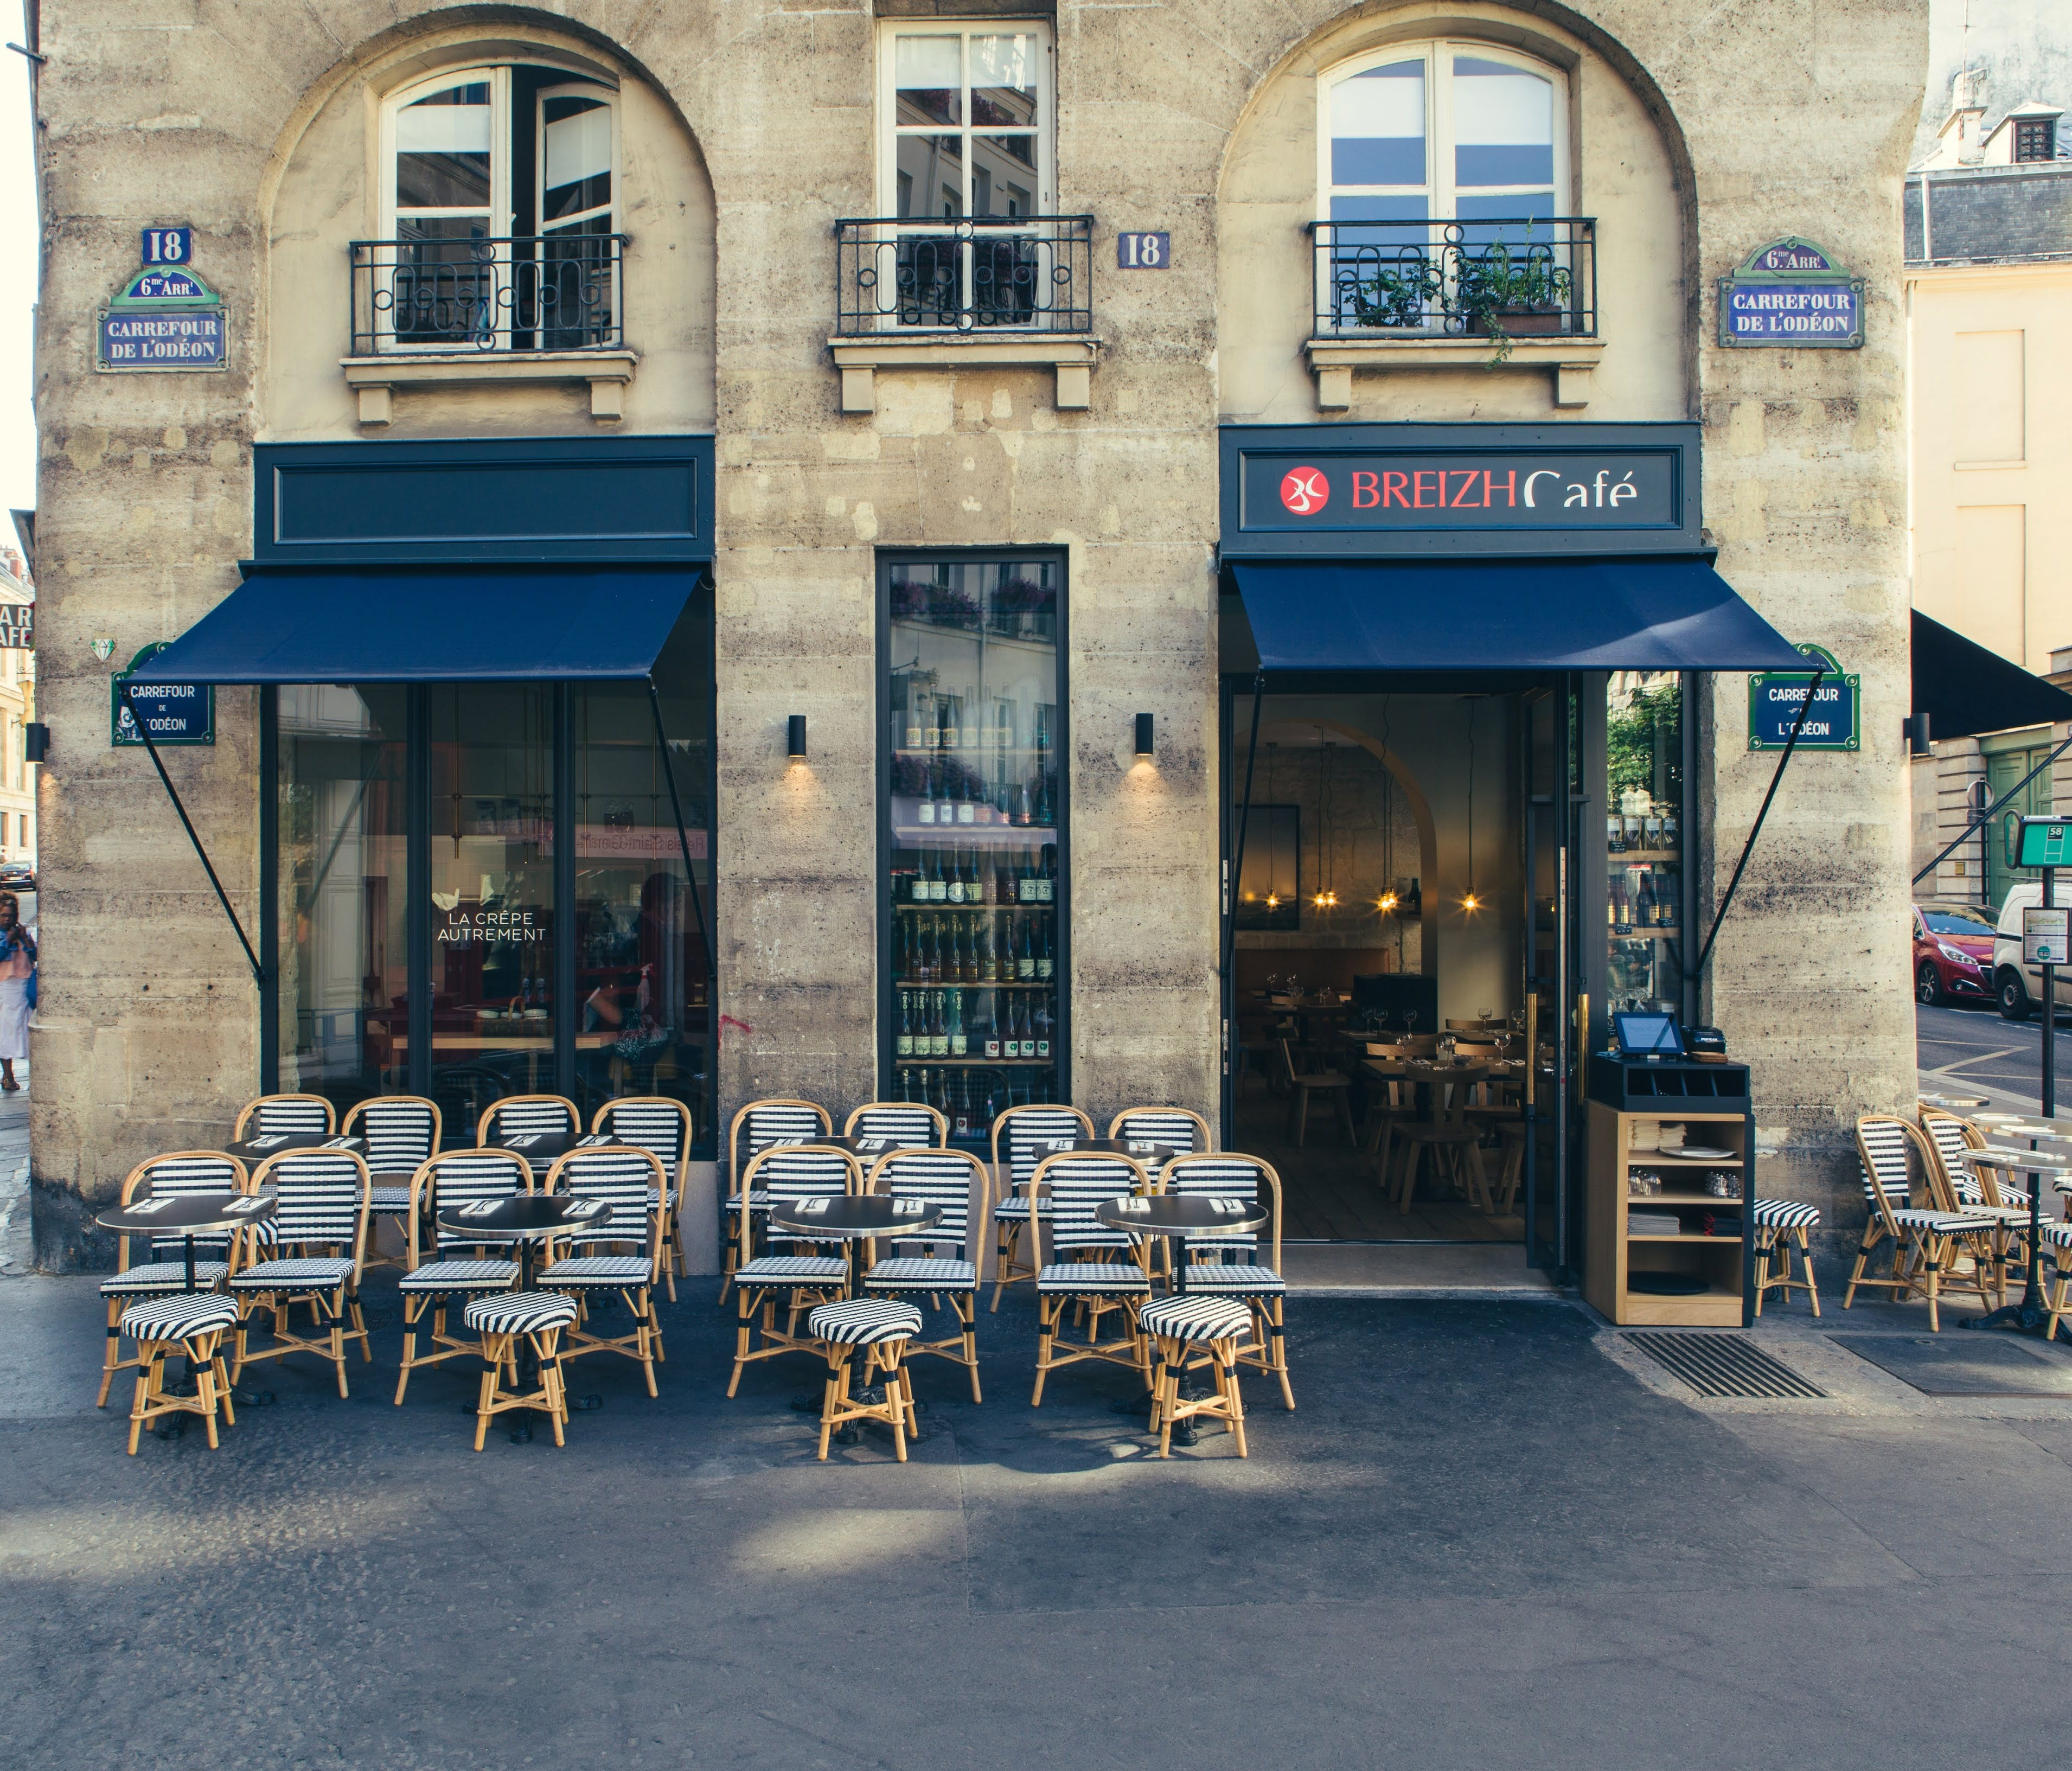 What's more French than crepes? The place to get your crepe on in Paris is Breizh Cafe -- the original restaurant is in the Marais district and an outpost recently opened in Saint Germain.